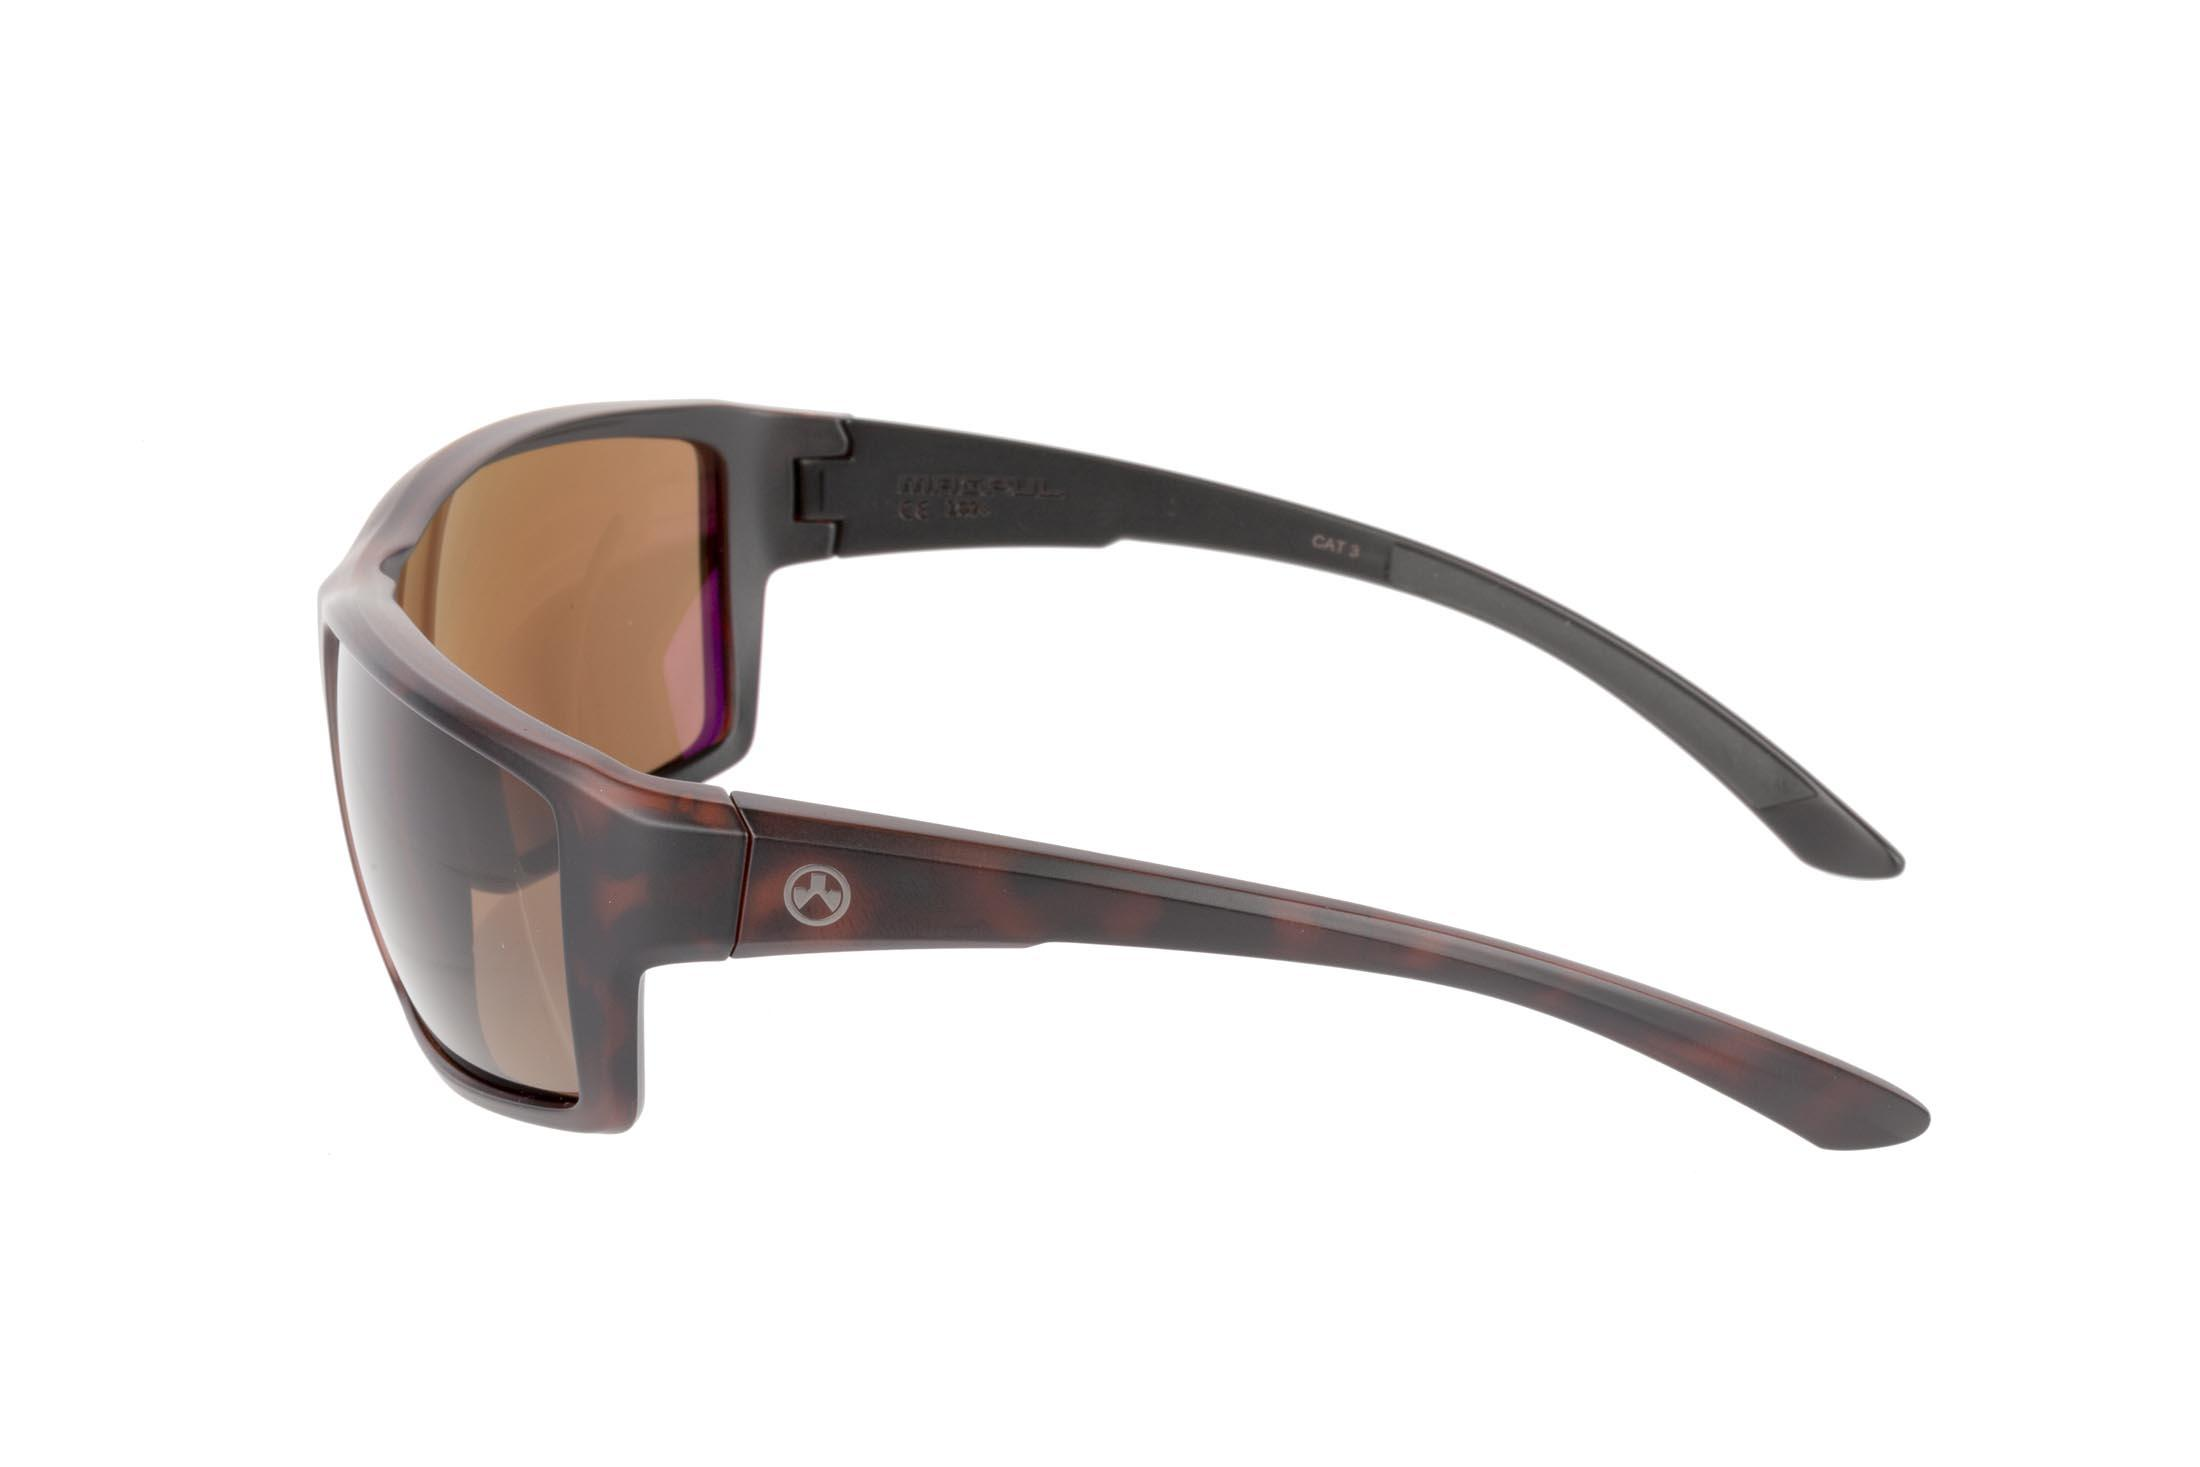 Magpul gray frame Summit sunglasses with Bronze polarized lenses are stylish, yet Z87+ and MIL-PRF 32432 ballistic rated